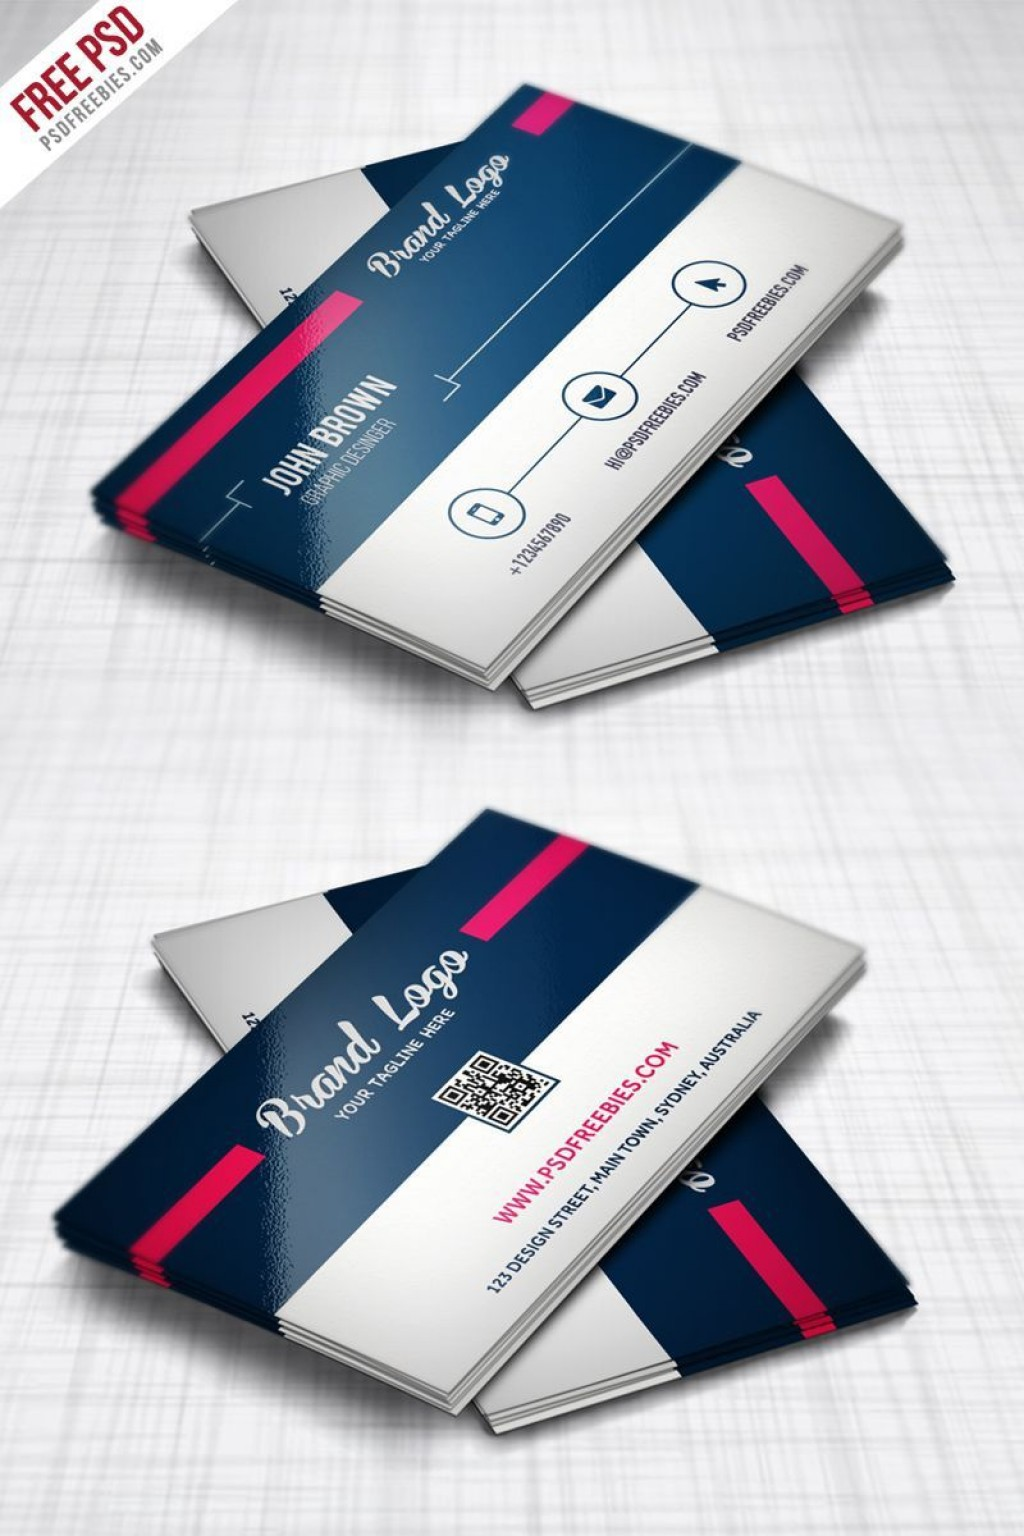 007 Exceptional Free Adobe Photoshop Busines Card Template Idea  Templates DownloadLarge